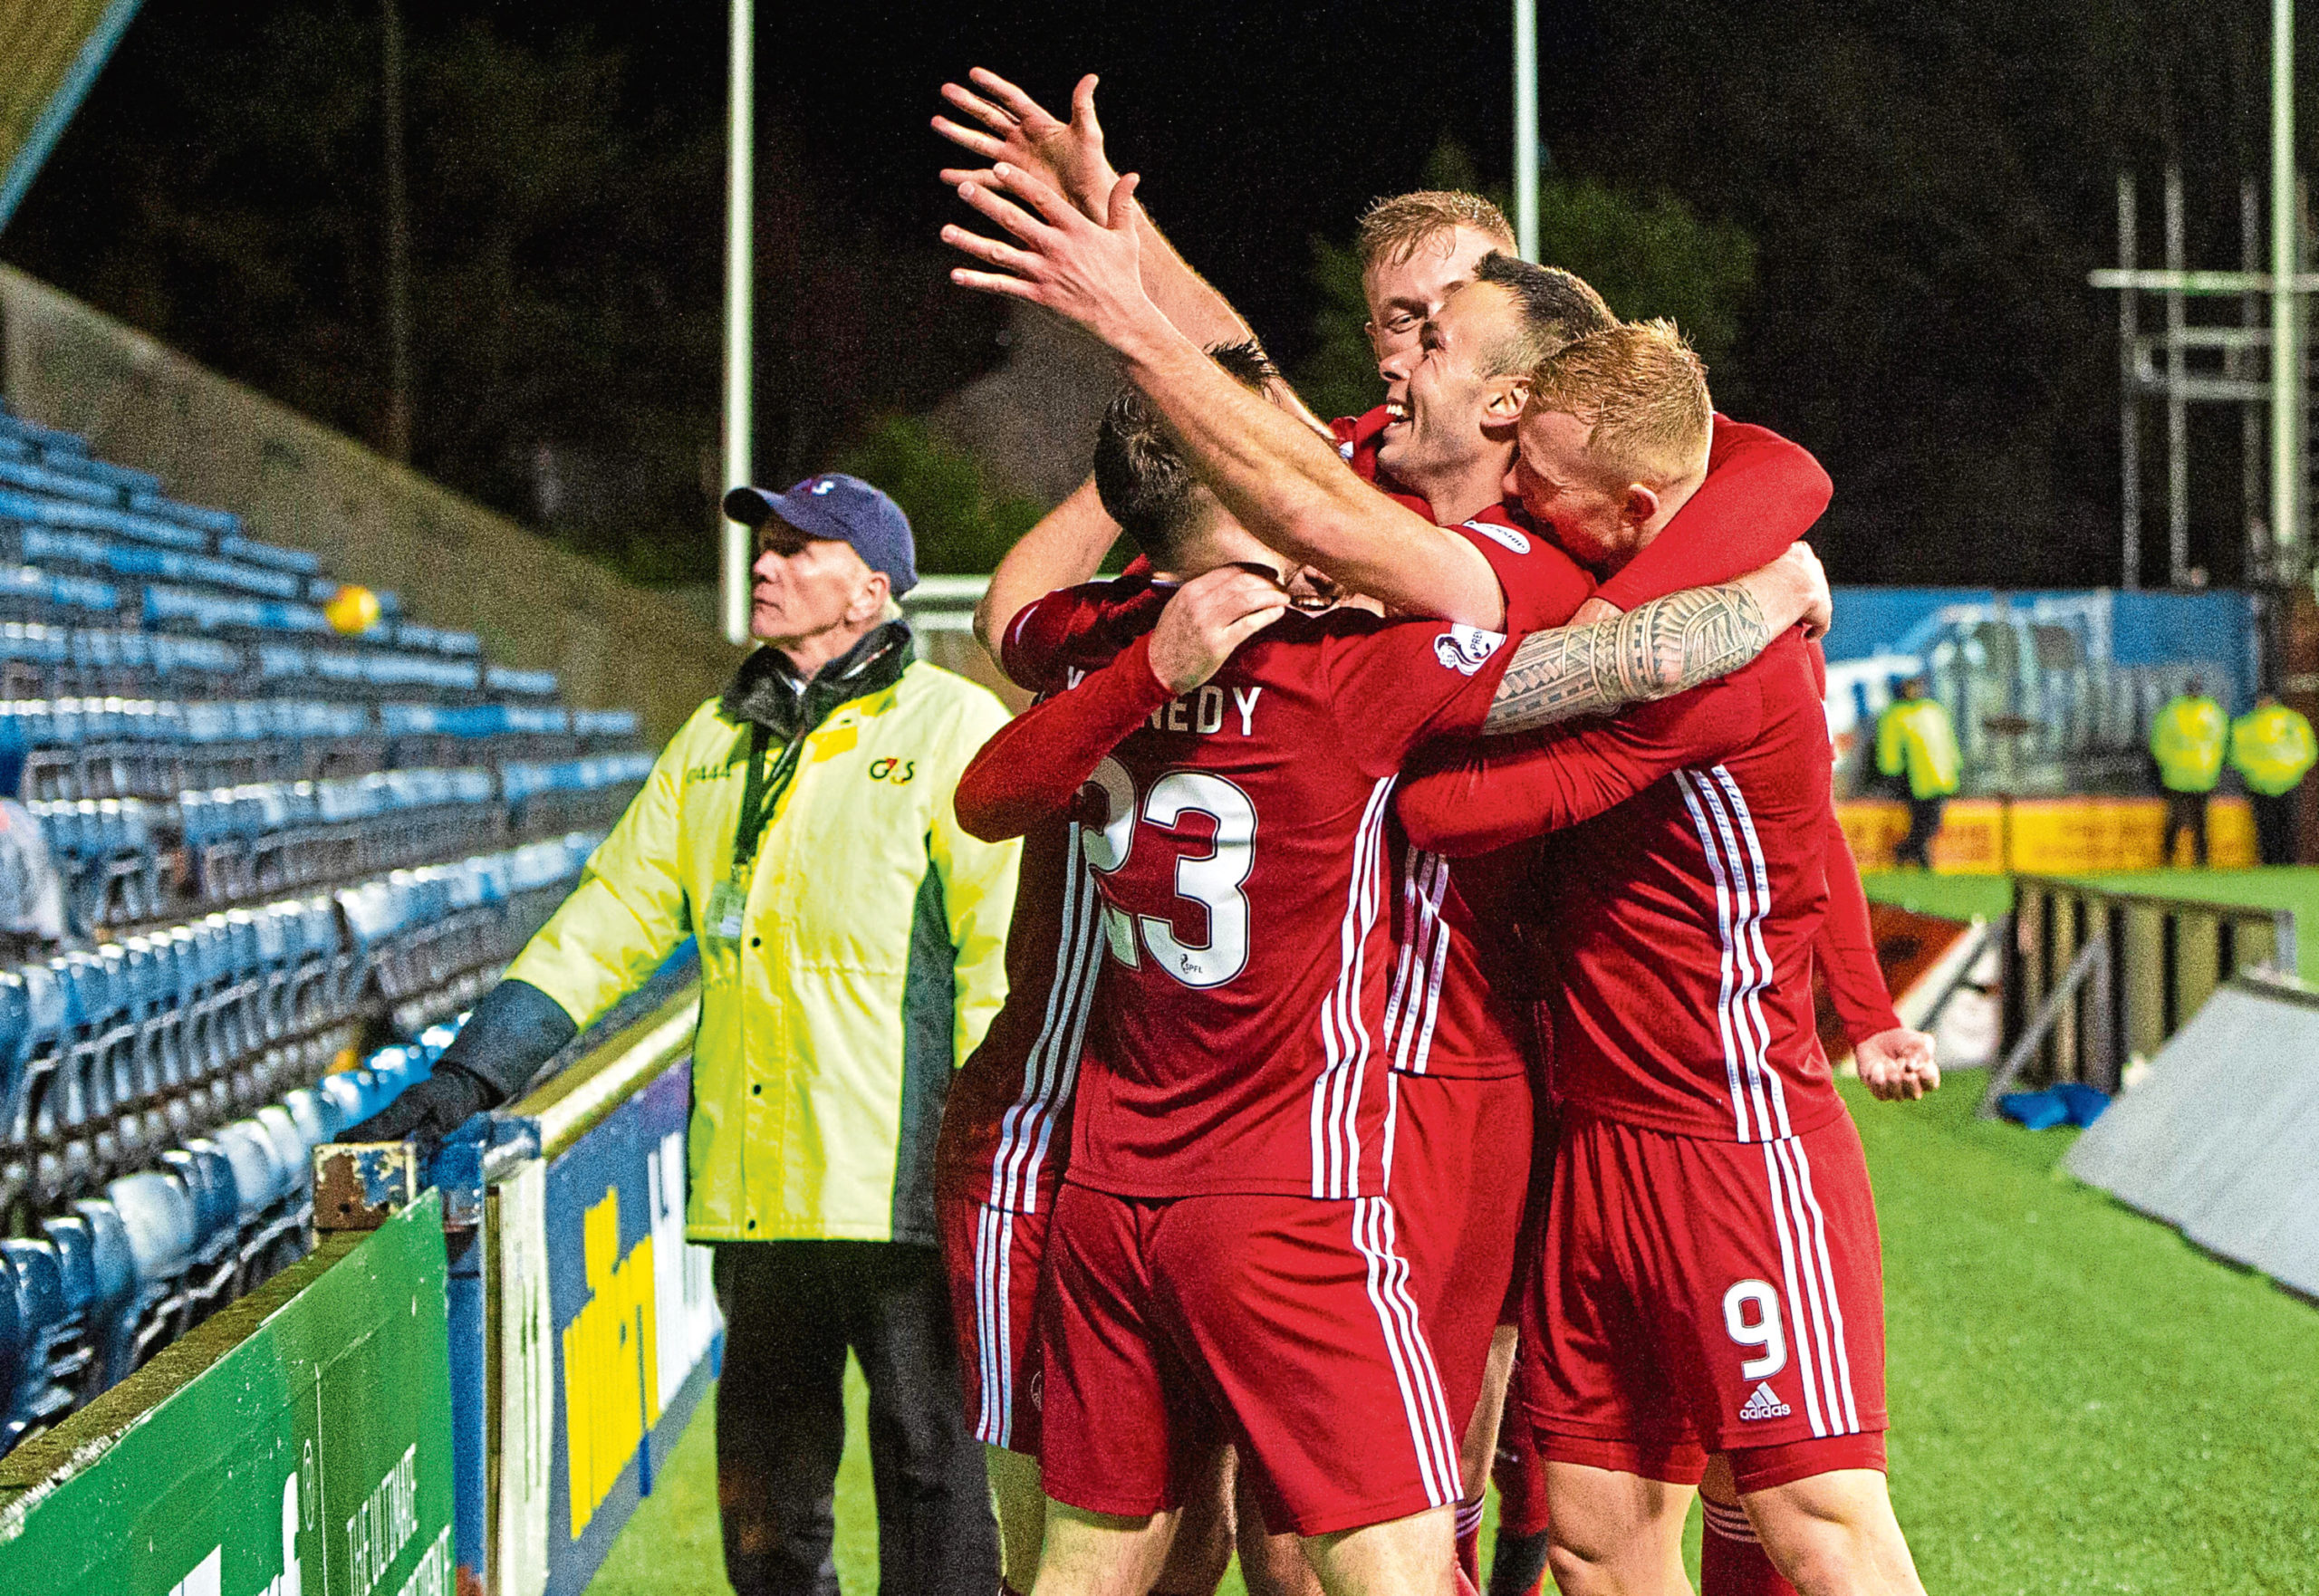 Andy Considine celebrates after Aberdeen knocked Kilmarnock out of the Scottish Cup. Considine's cross was turned home by a Killie defender to secure a momentous 4-3 victory.